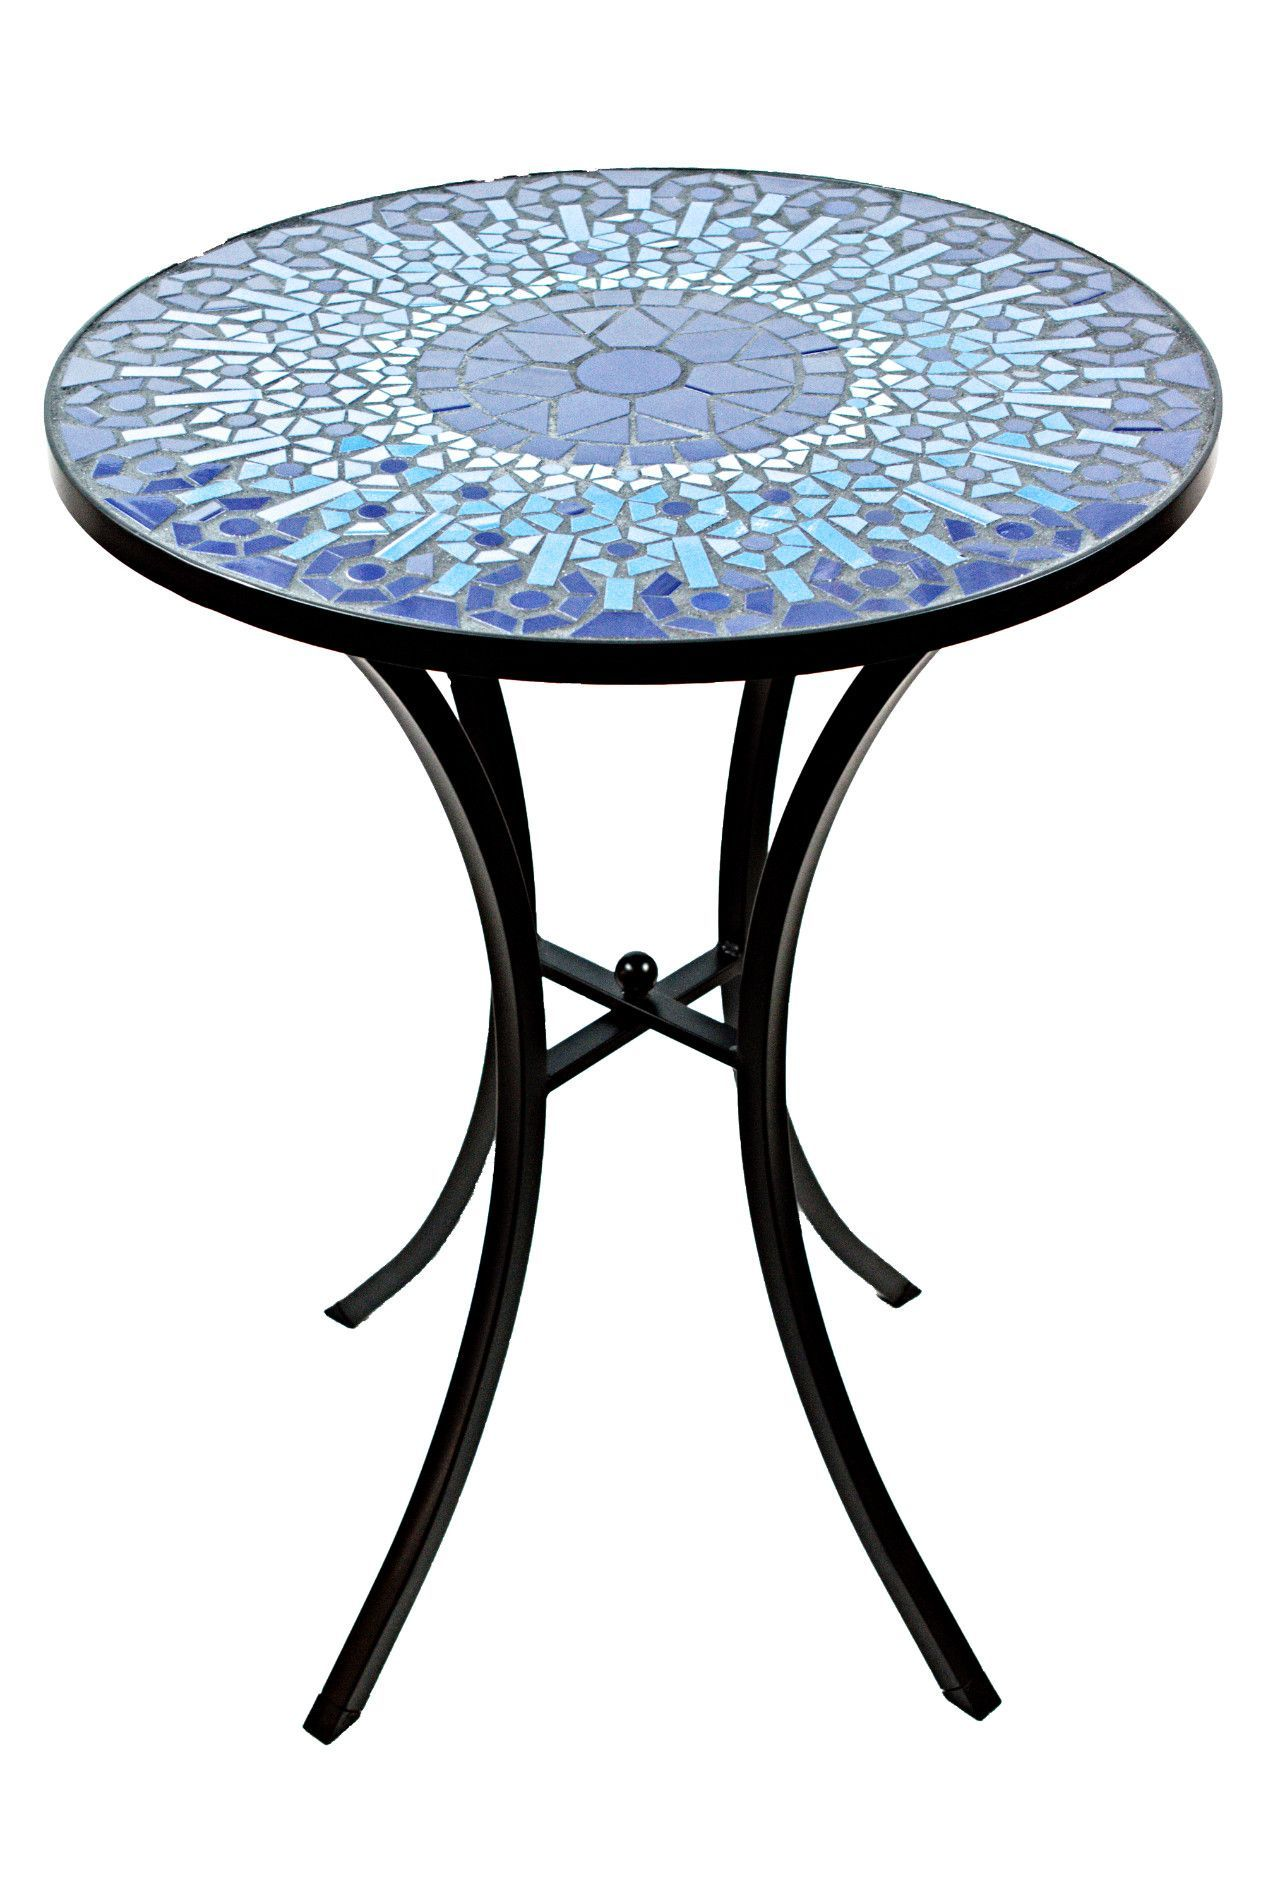 mosaic accent table mosaico art furniture ceramic outdoor this tile adds elegance any indoor decor the intricate pattern handcrafted for impeccable finish and copper side emerald